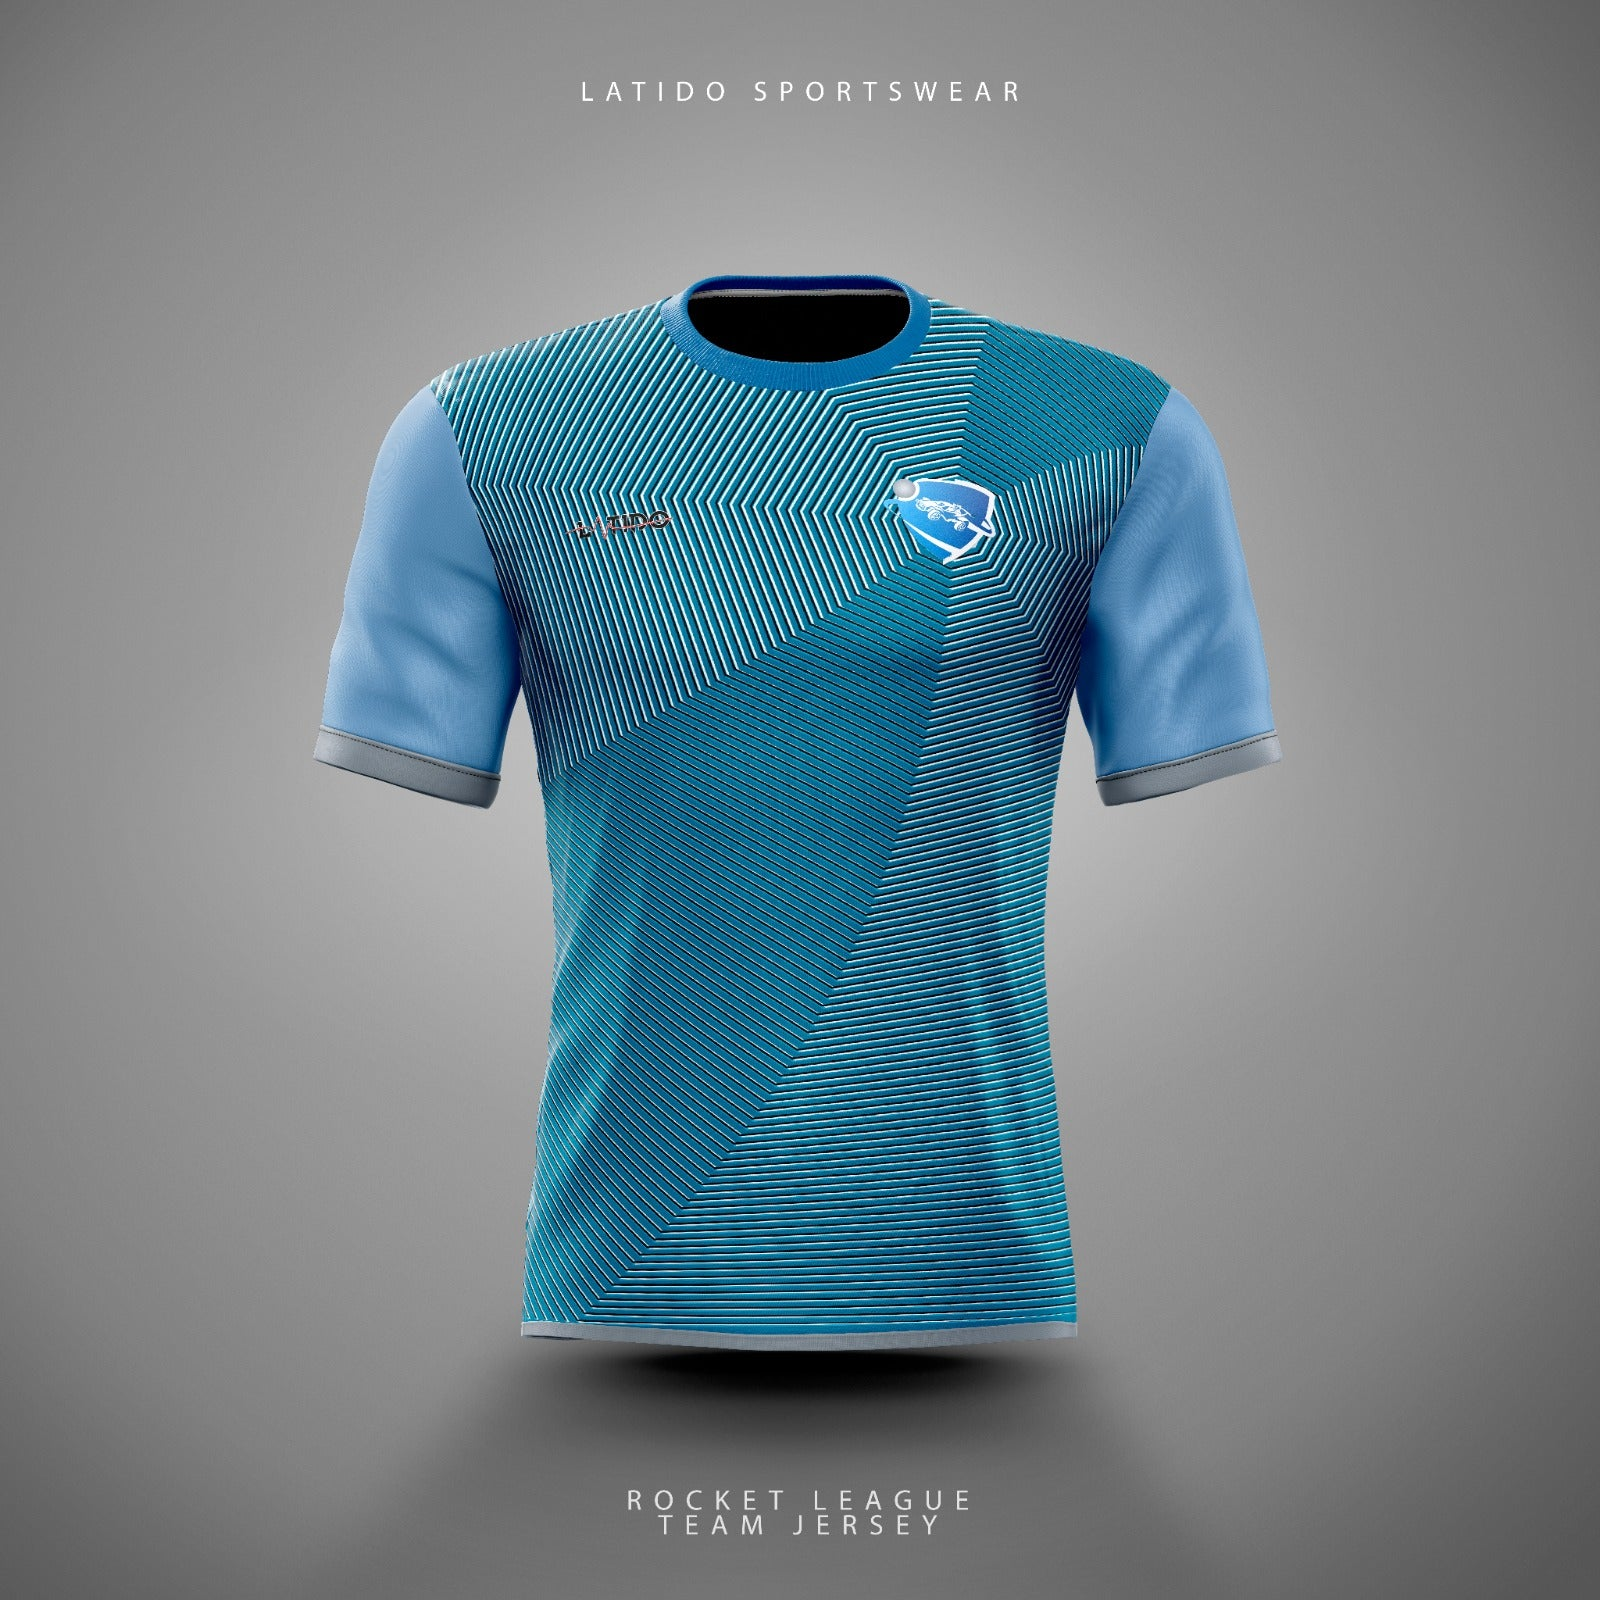 Camiseta Rocket League personalizada